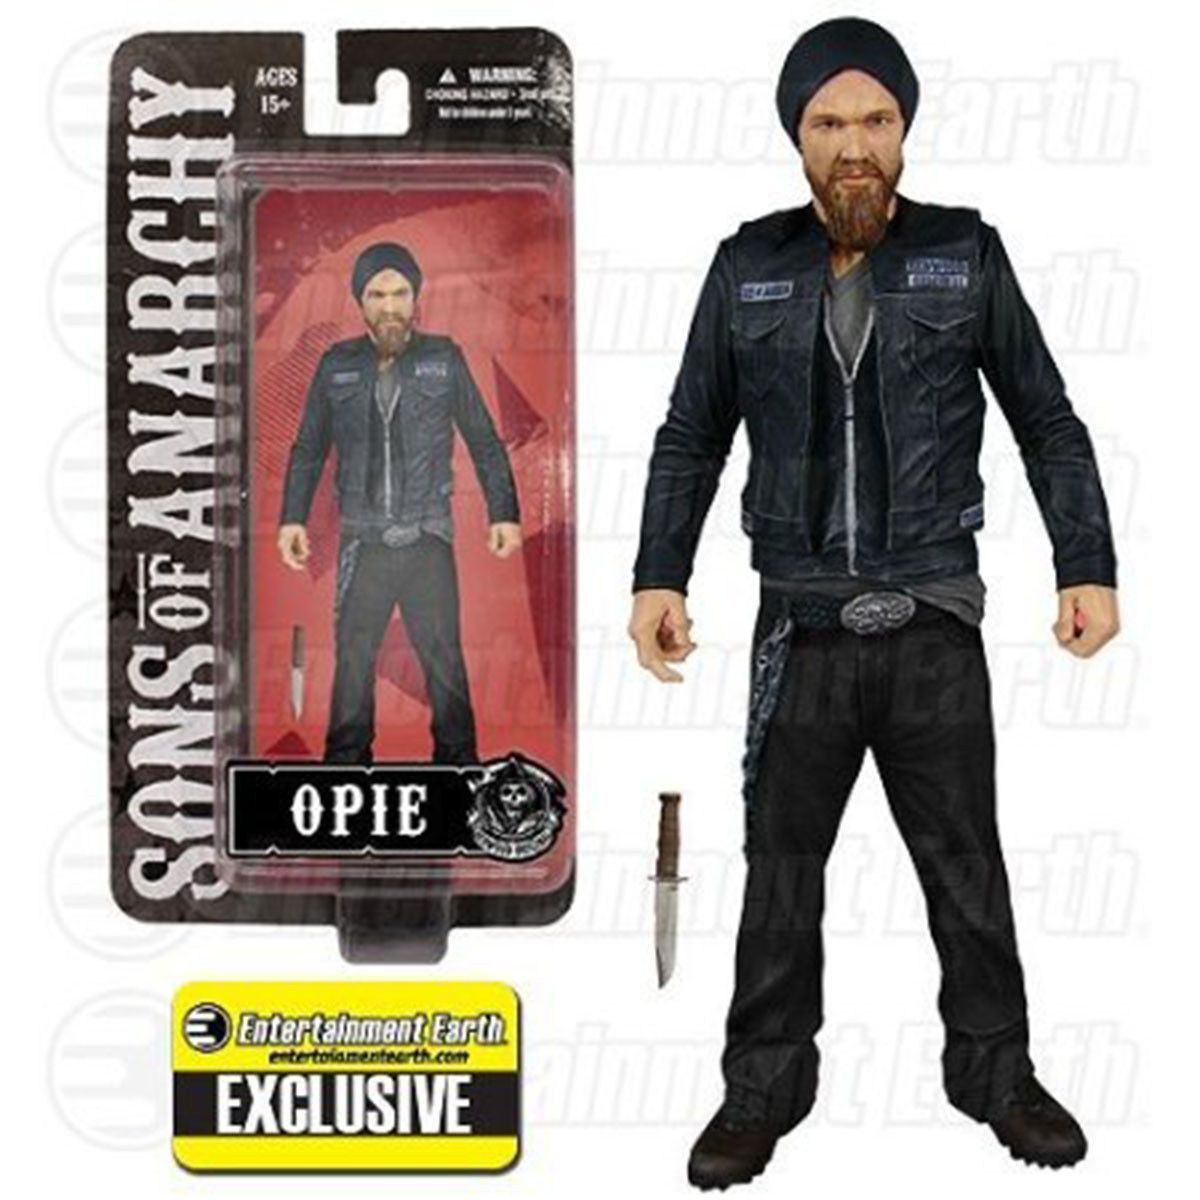 Sons of Anarchy Exclusive Opie Winston Action Figure